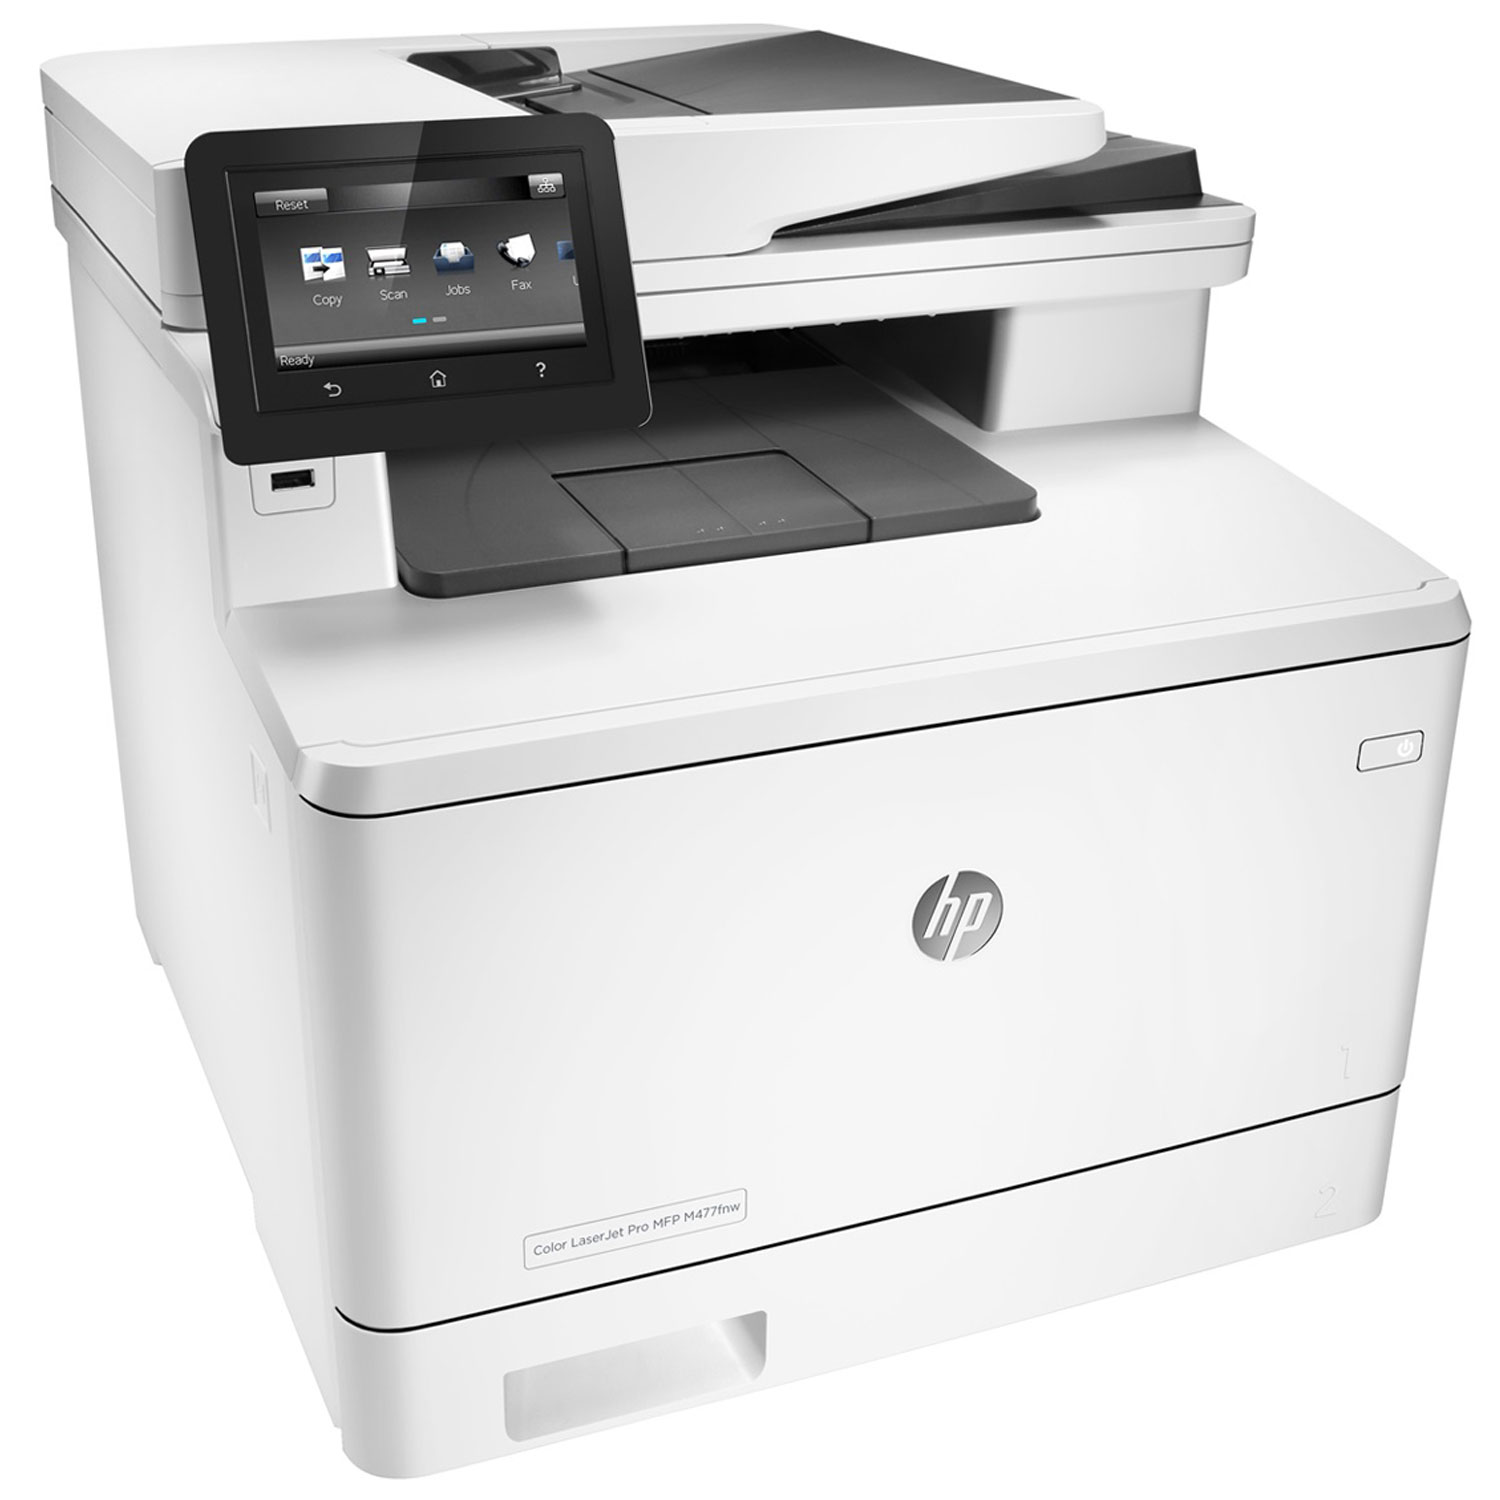 hp color laserjet pro mfp m477fnw imprimante multifonction hp sur. Black Bedroom Furniture Sets. Home Design Ideas